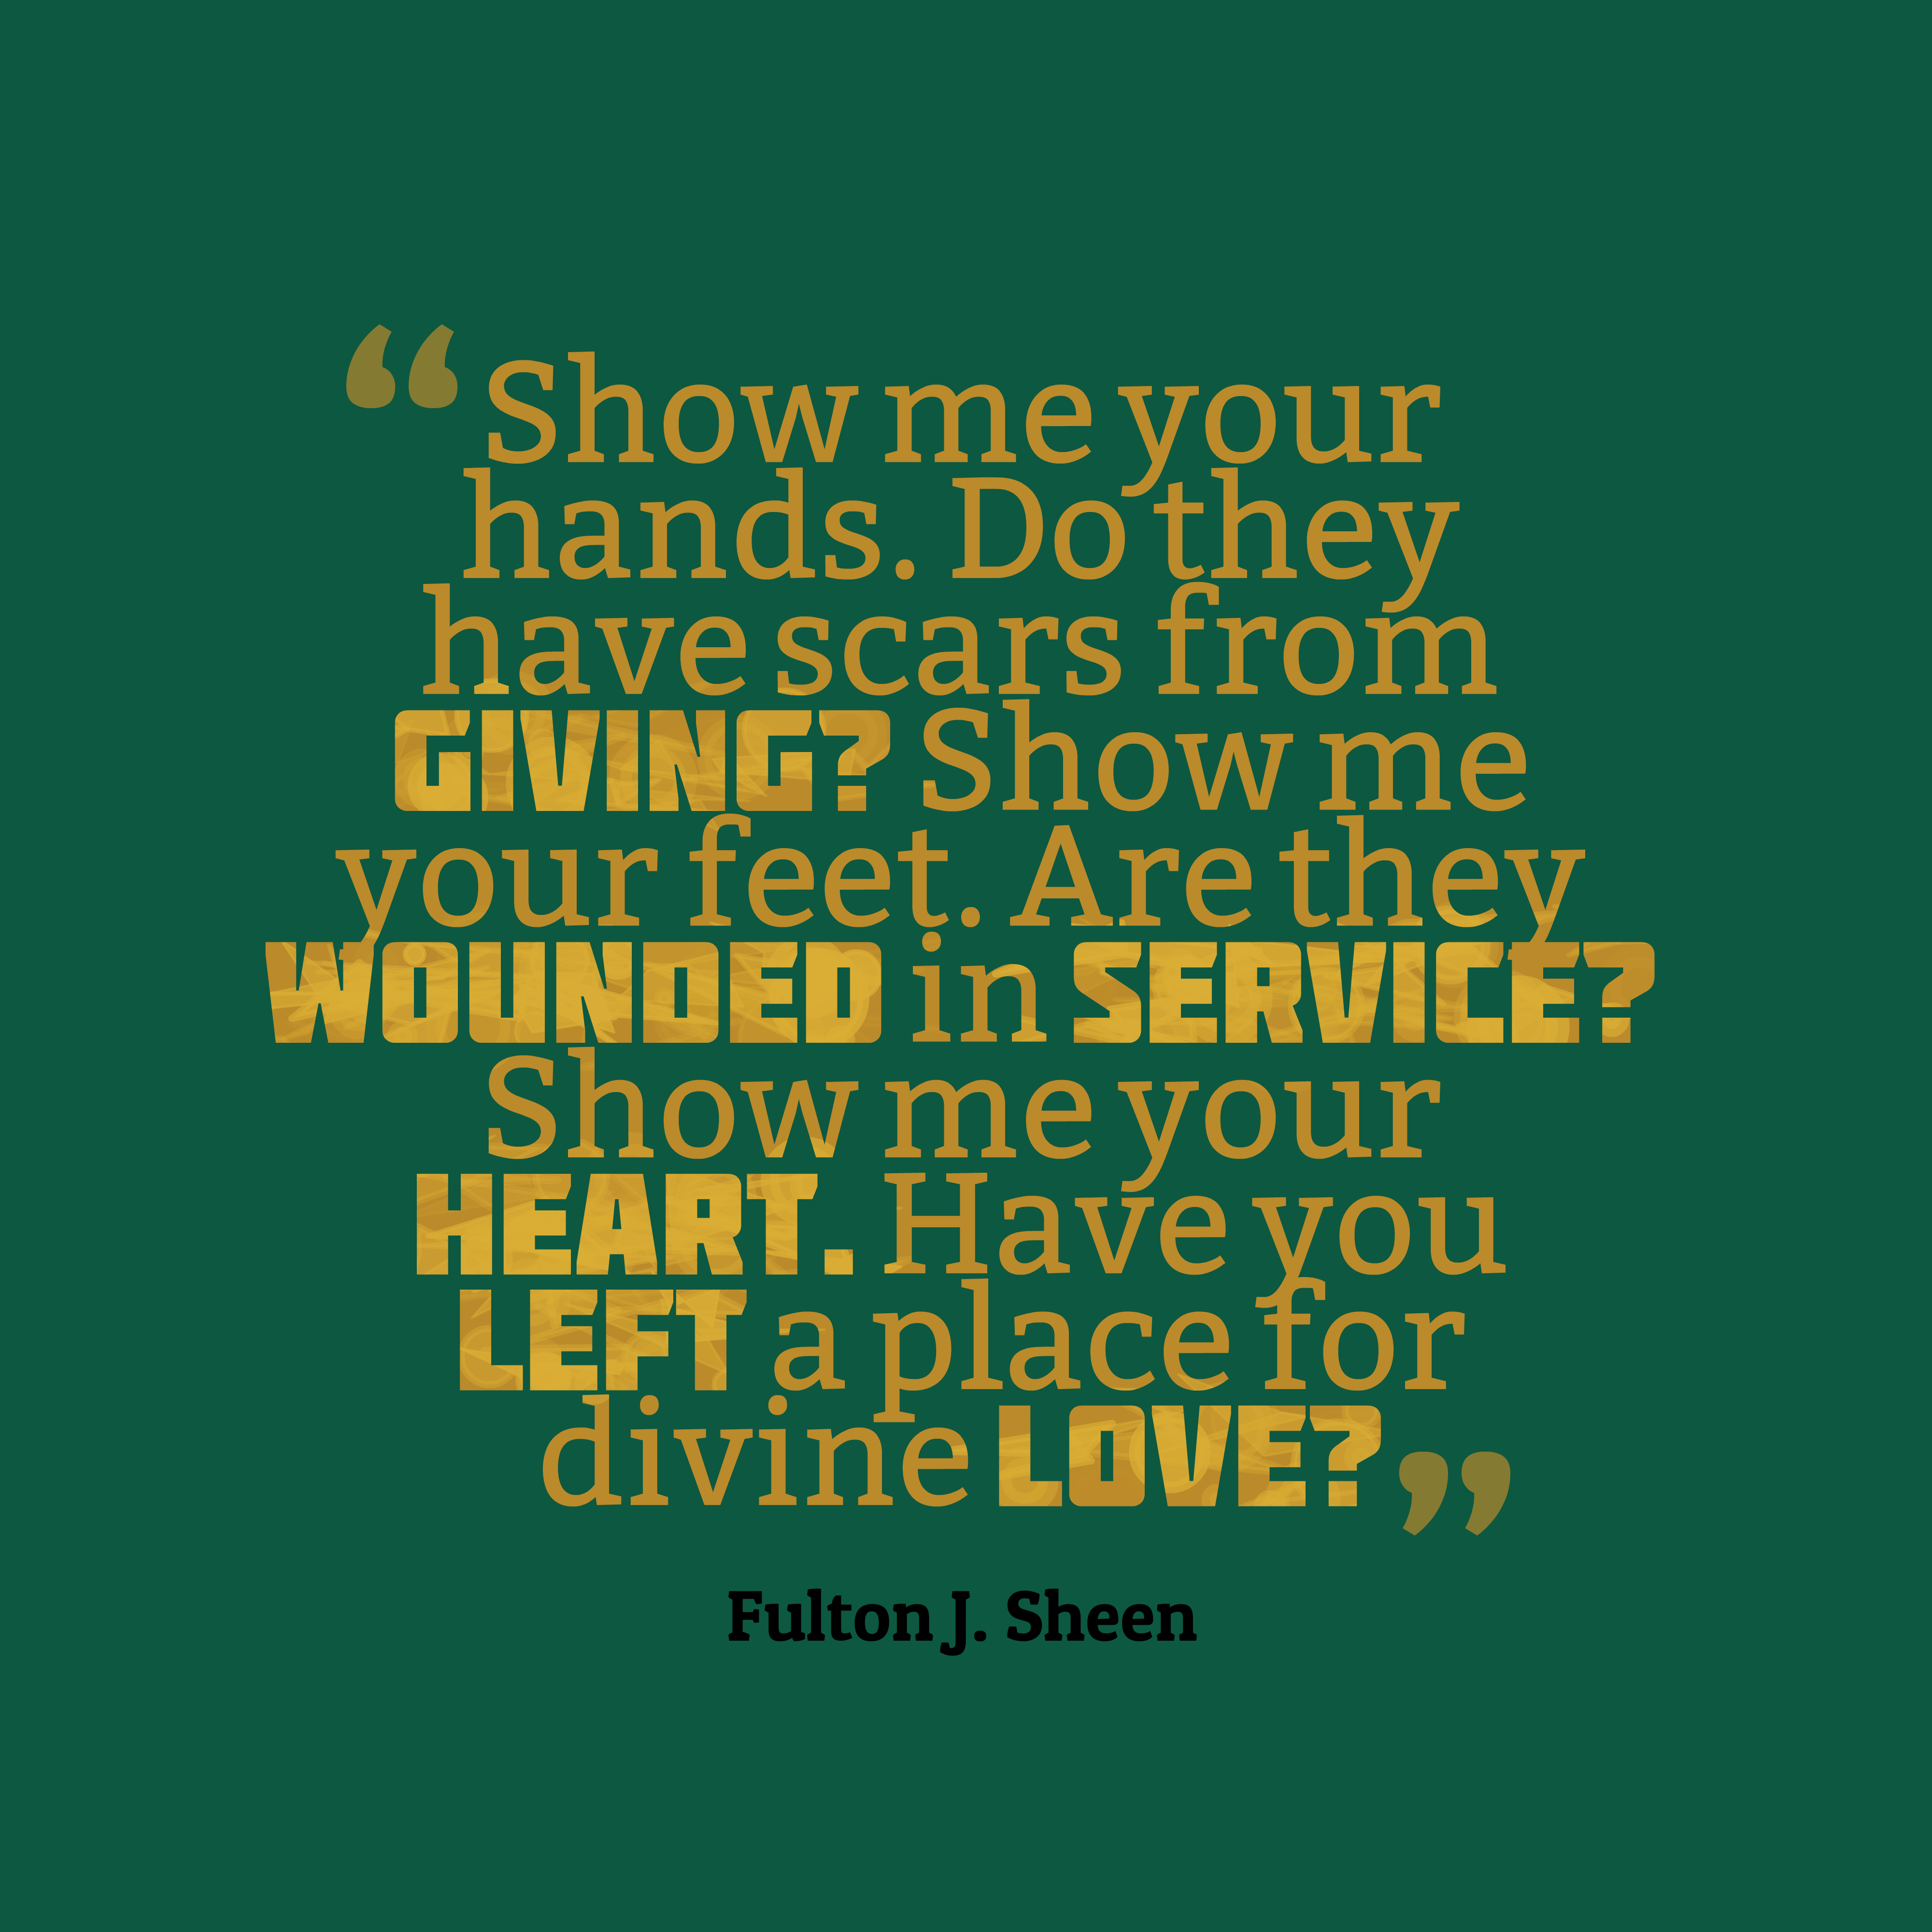 Quotes image of Show me your hands. Do they have scars from giving? Show me your feet. Are they wounded in service? Show me your heart. Have you left a place for divine love?